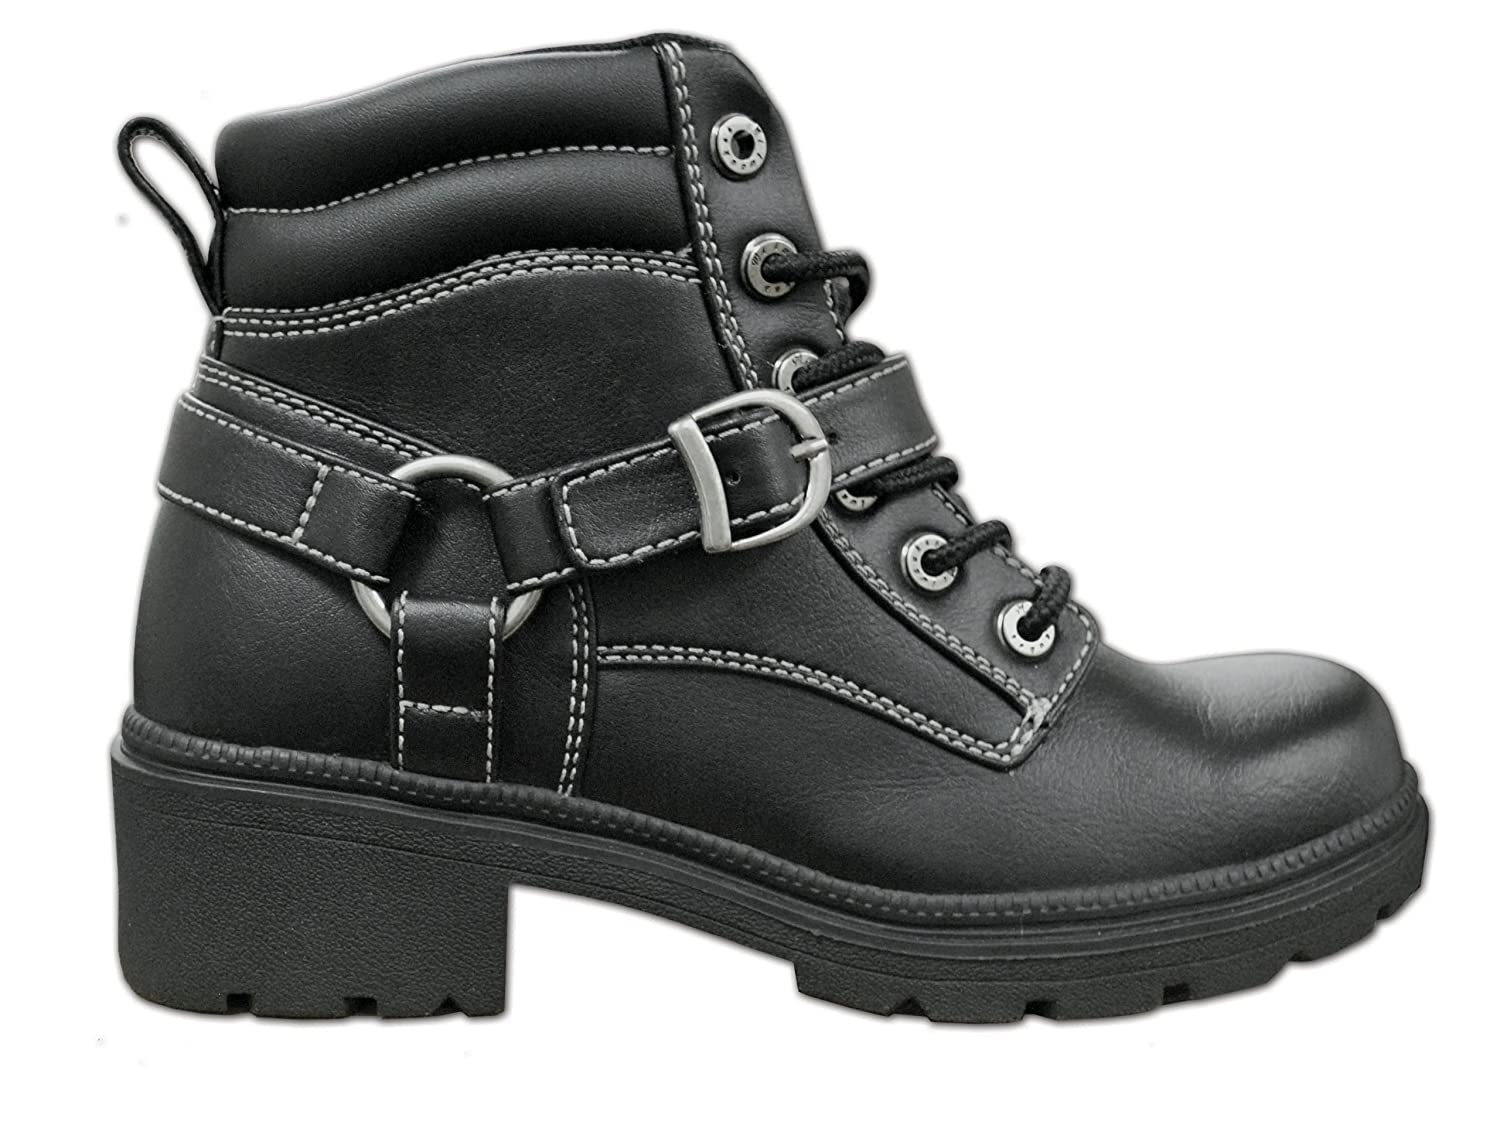 Milwaukee Motorcycle Clothing Company Womens Paragon Boots (Black, Size 7) MB22814